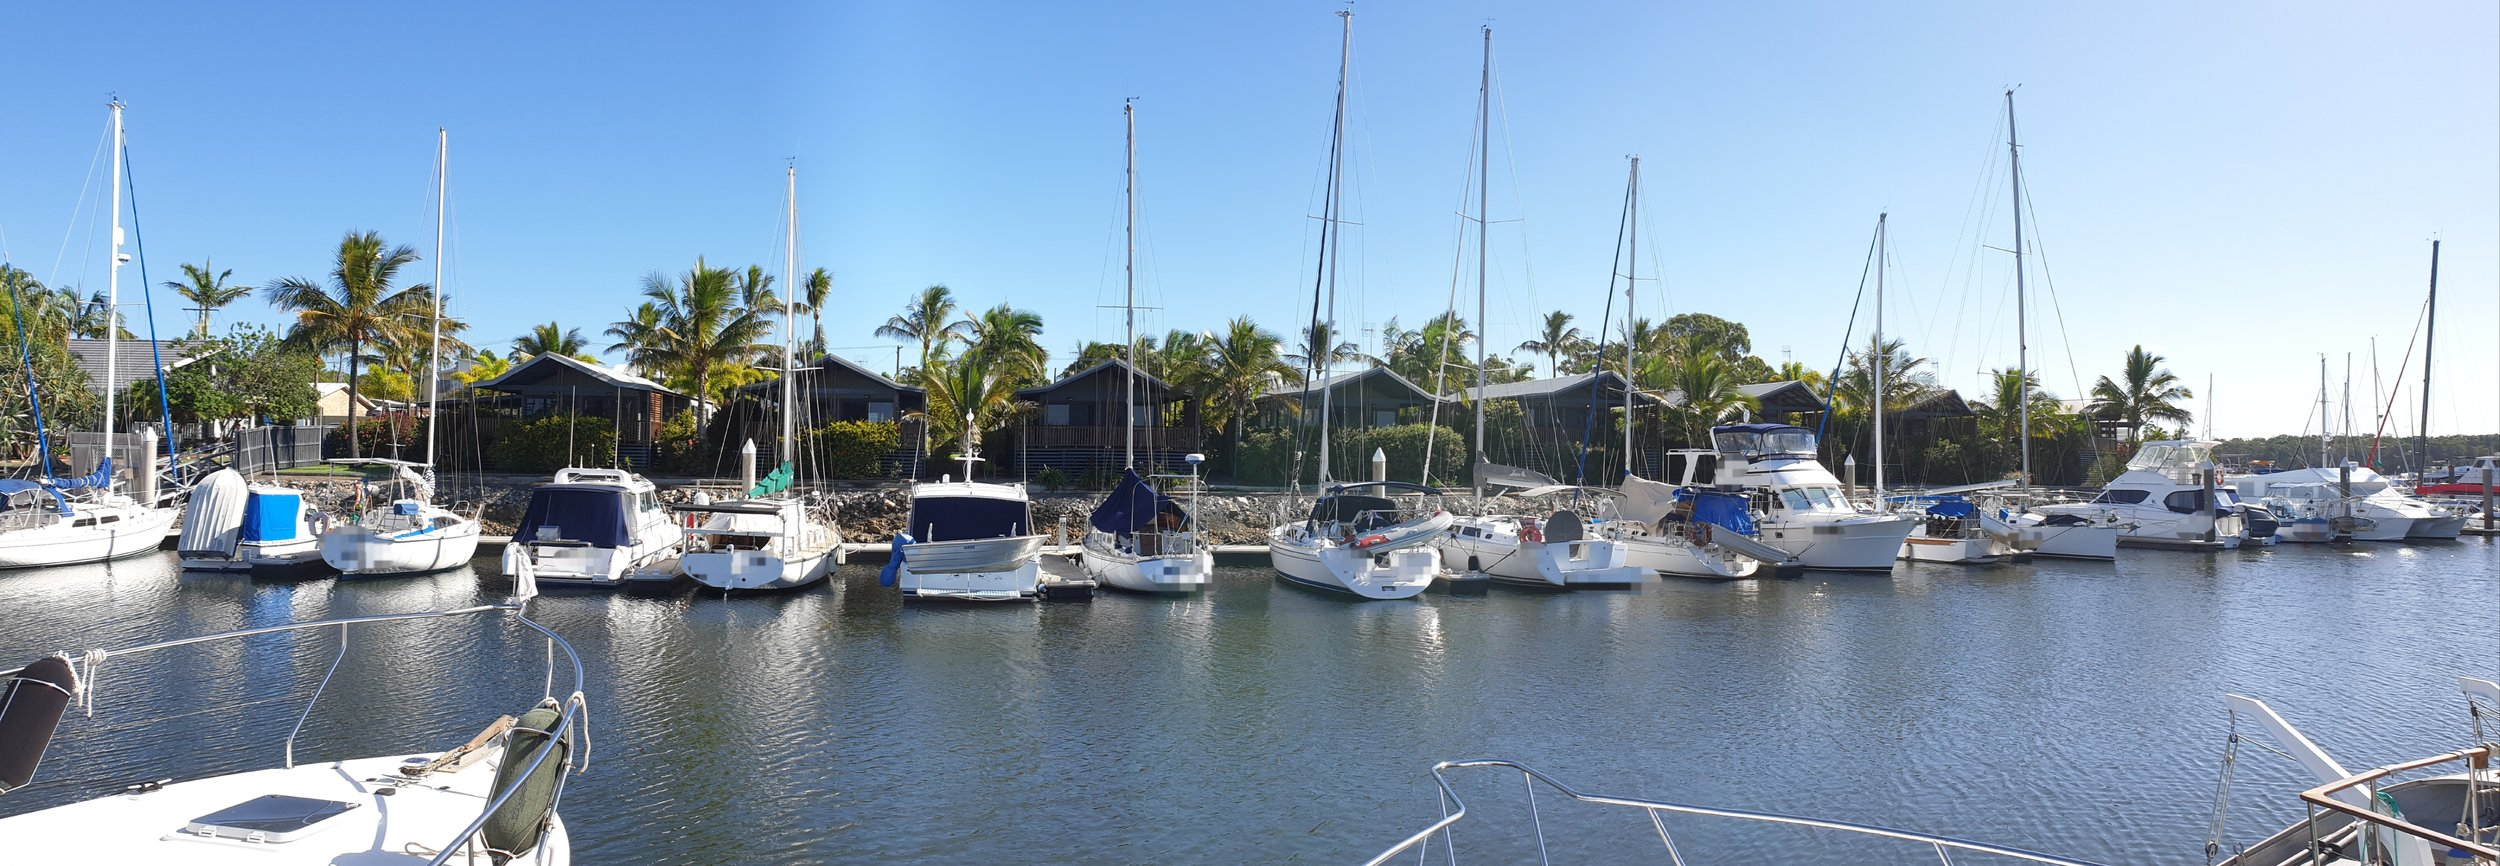 marina and front villas.jpg